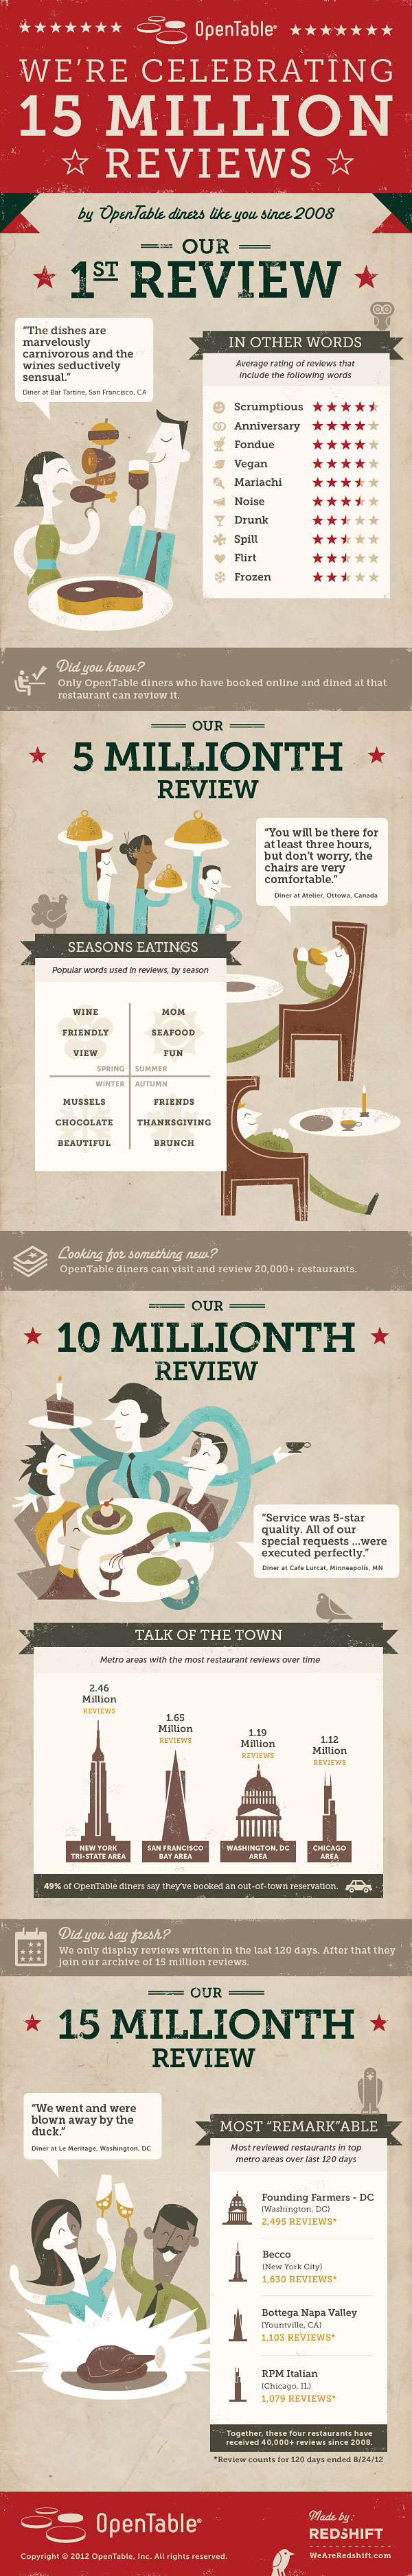 15 Million OpenTable Reviews